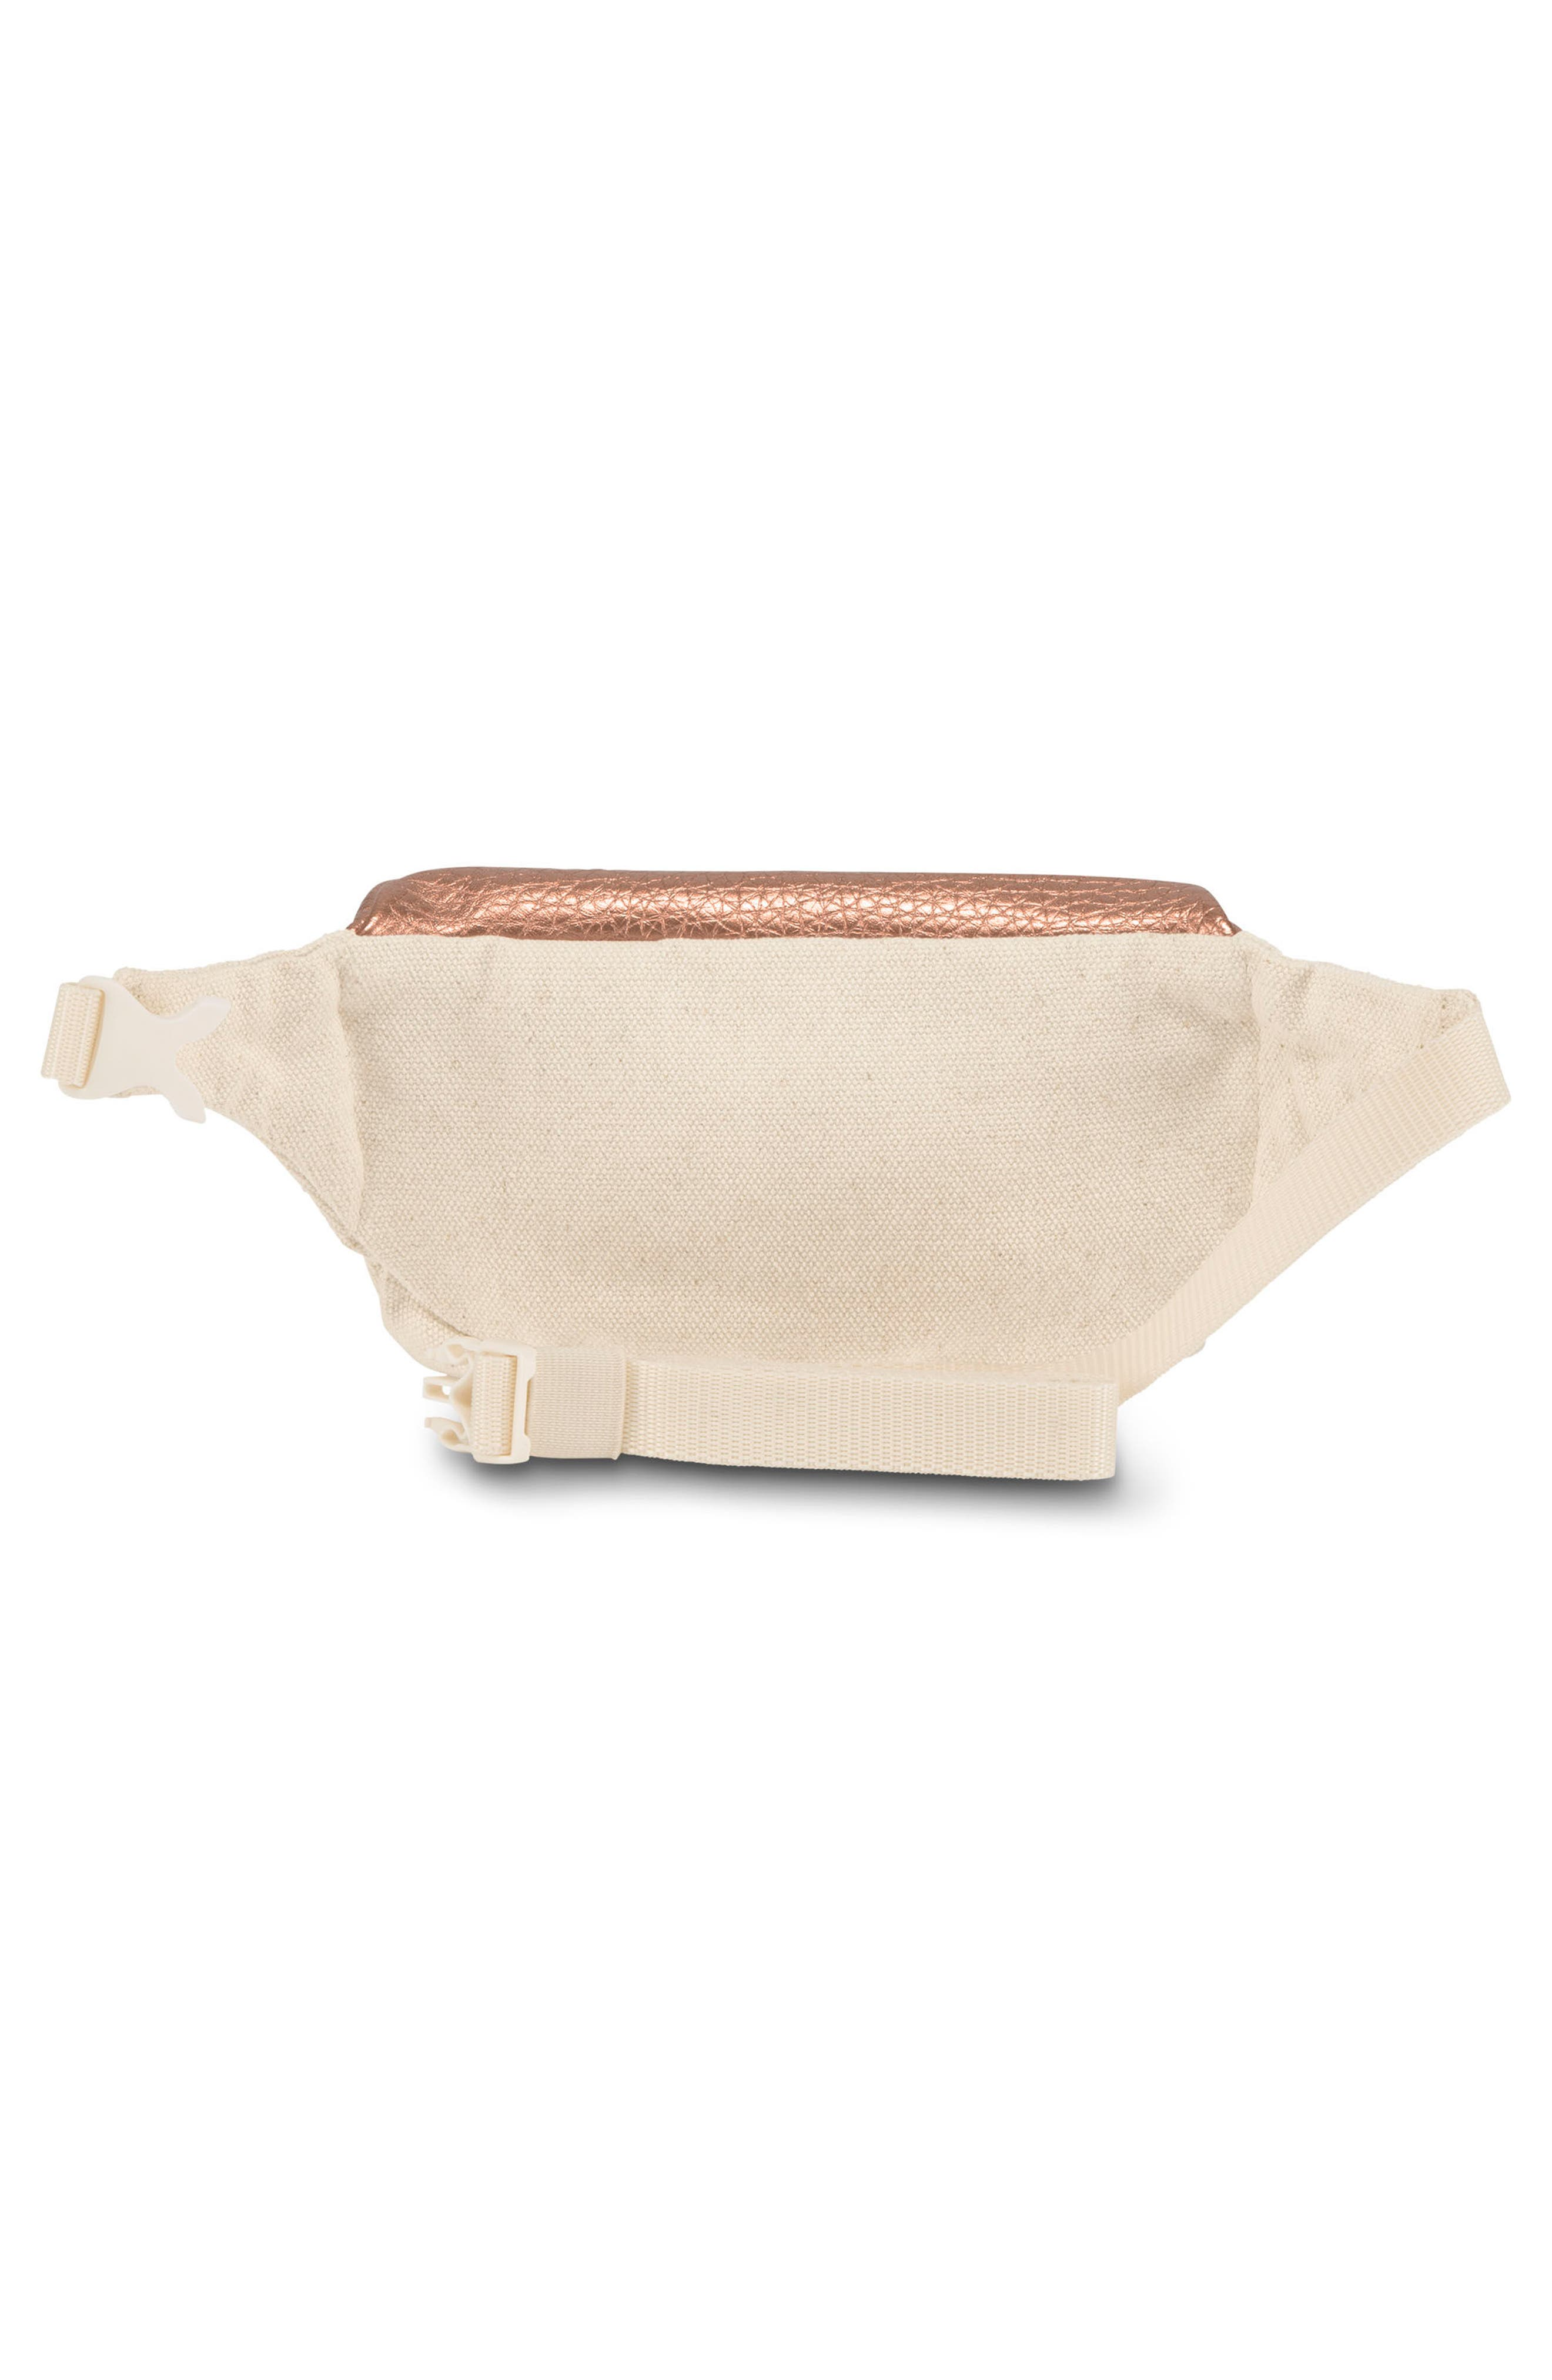 Hippyland Fanny Pack,                             Alternate thumbnail 3, color,                             Rose Gold